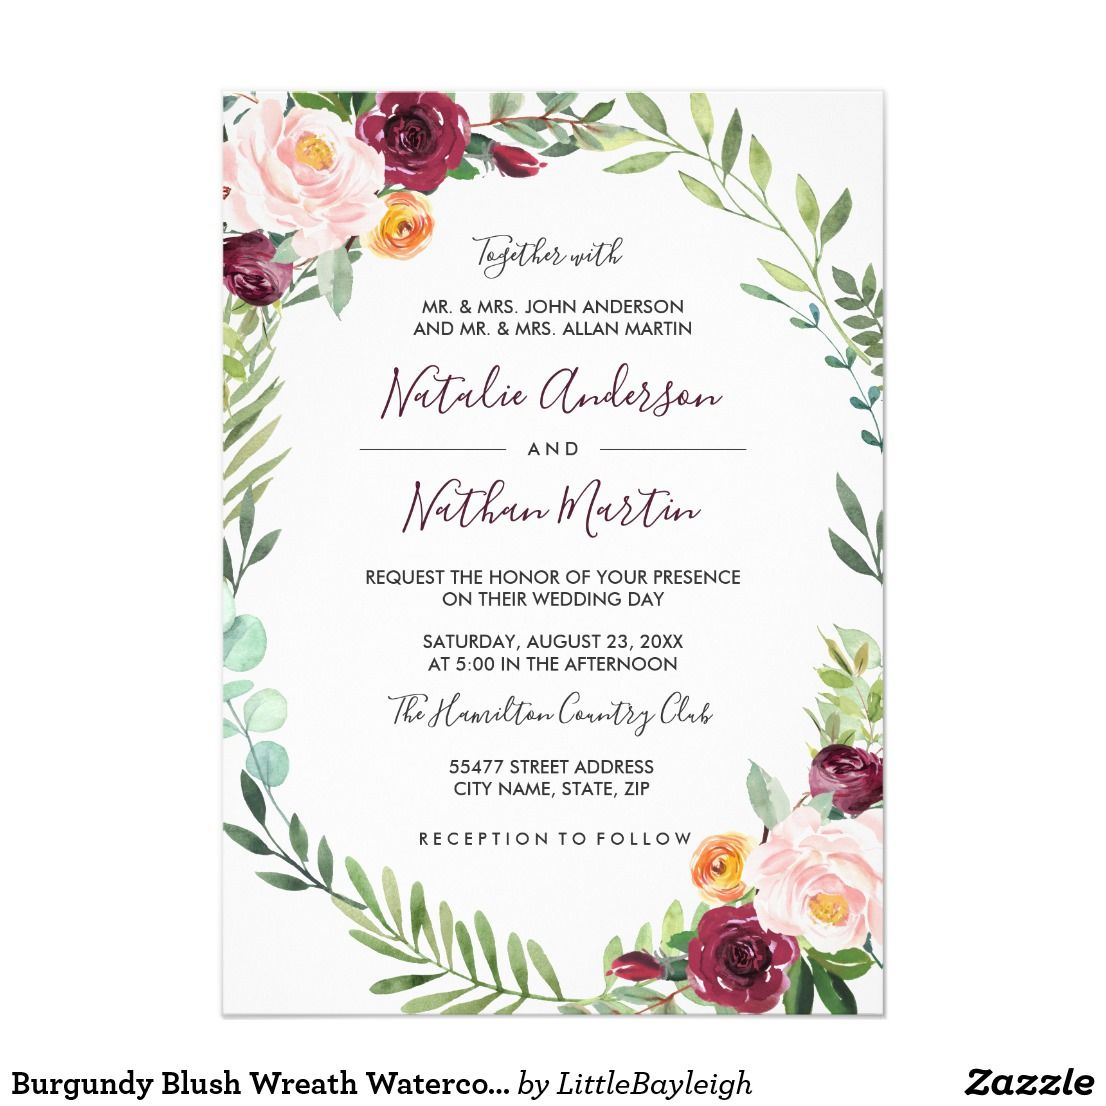 Burgundy Blush Wreath Watercolor Frame Wedding Invitation Zazzle